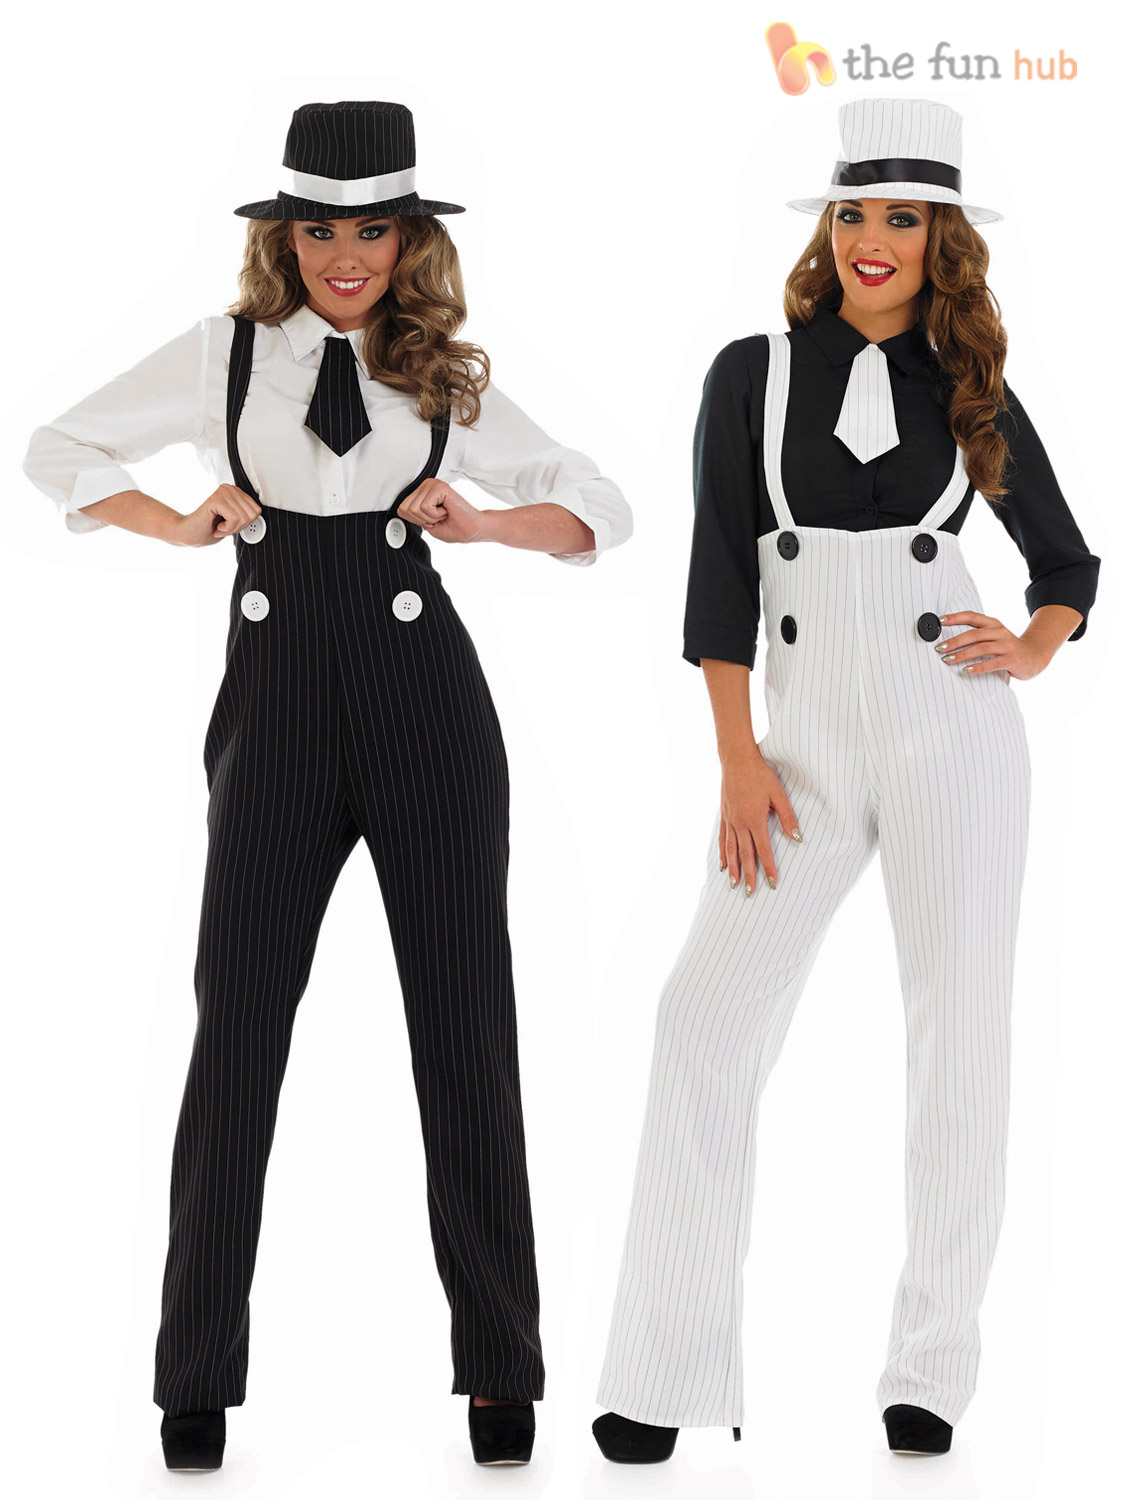 Cool The First Batch Of BriK Suits Will Feature Popular Fancy Dress Themes Such As Pirates, Gangsters And Super Heroes  We Have A Range Of Styles Suitable For Men And Women, And The Onesizefits All Strategy Takes The Usual Hassle Out Of